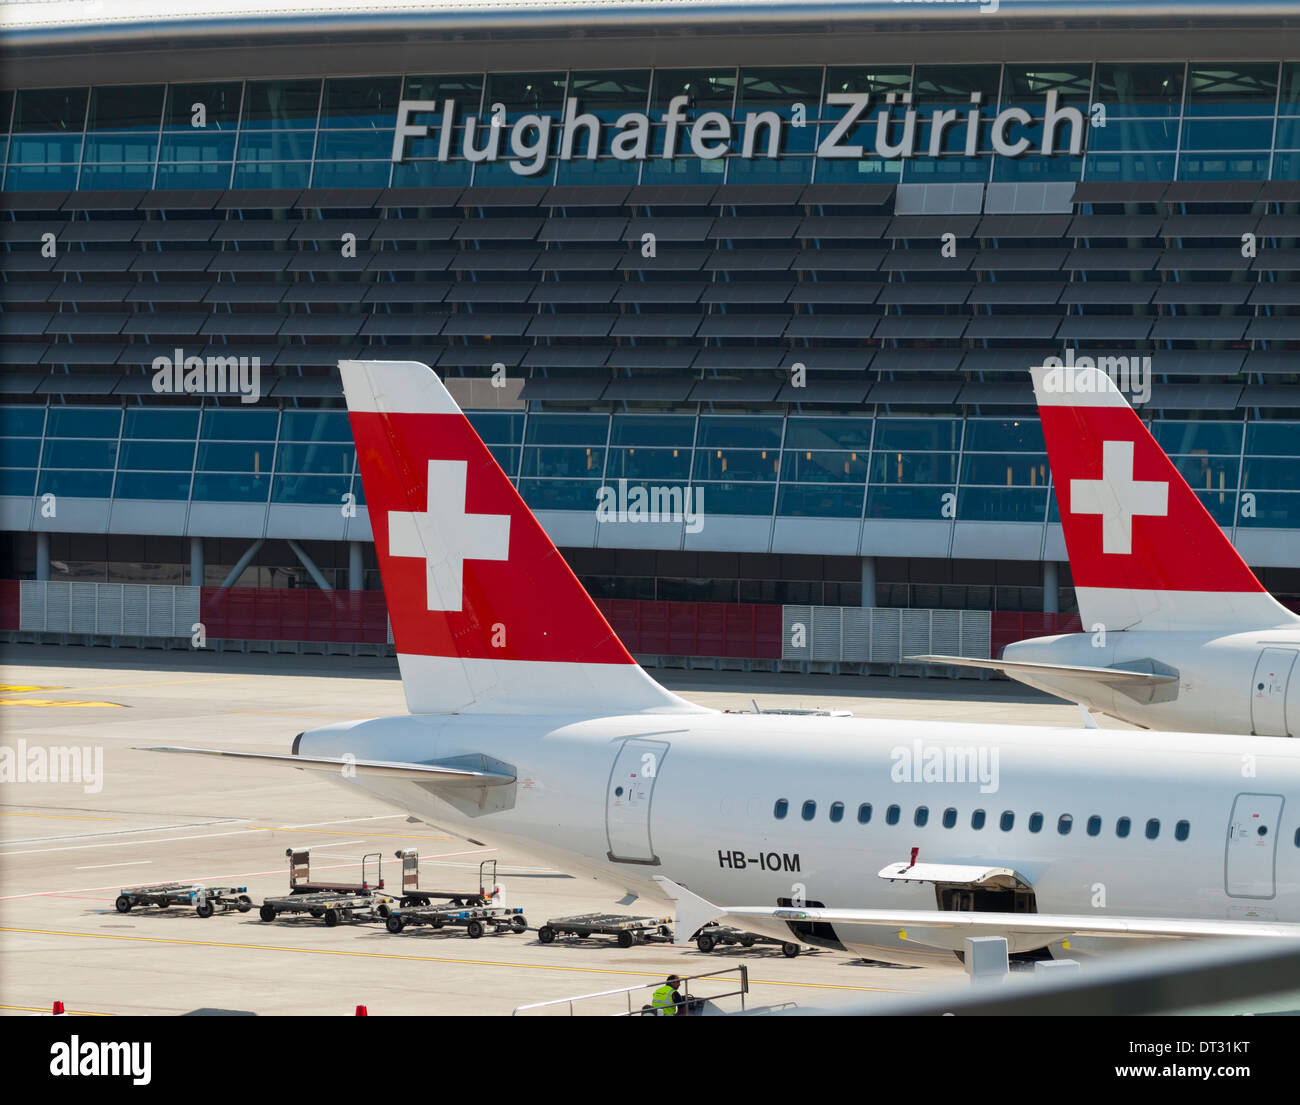 Swiss International Airlines passenger aircrafts parked at Zurich Kloten International Airport Terminal Two - Stock Image